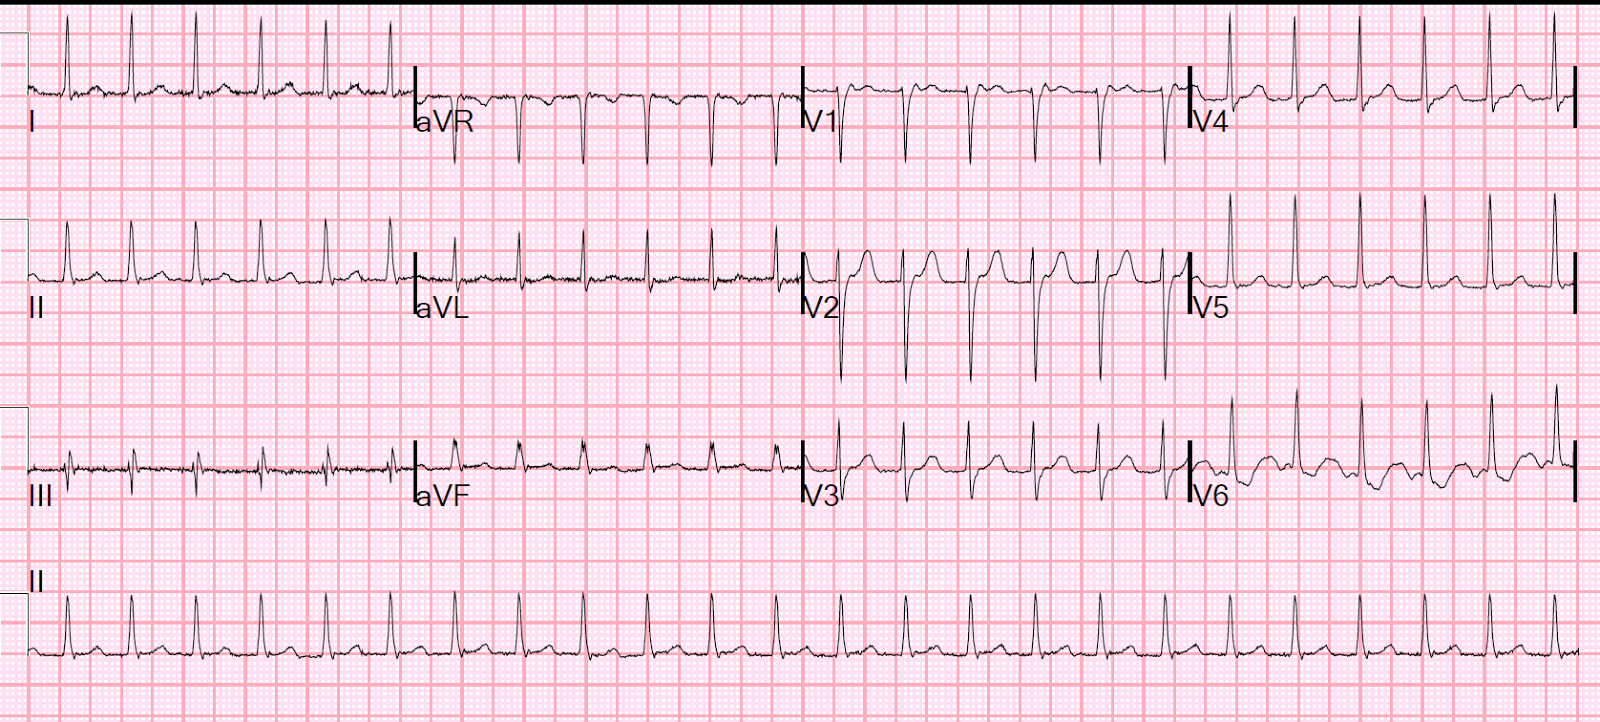 What Is Svt >> Dr Smith S Ecg Blog An Apparent Svt That Does Not Persistently